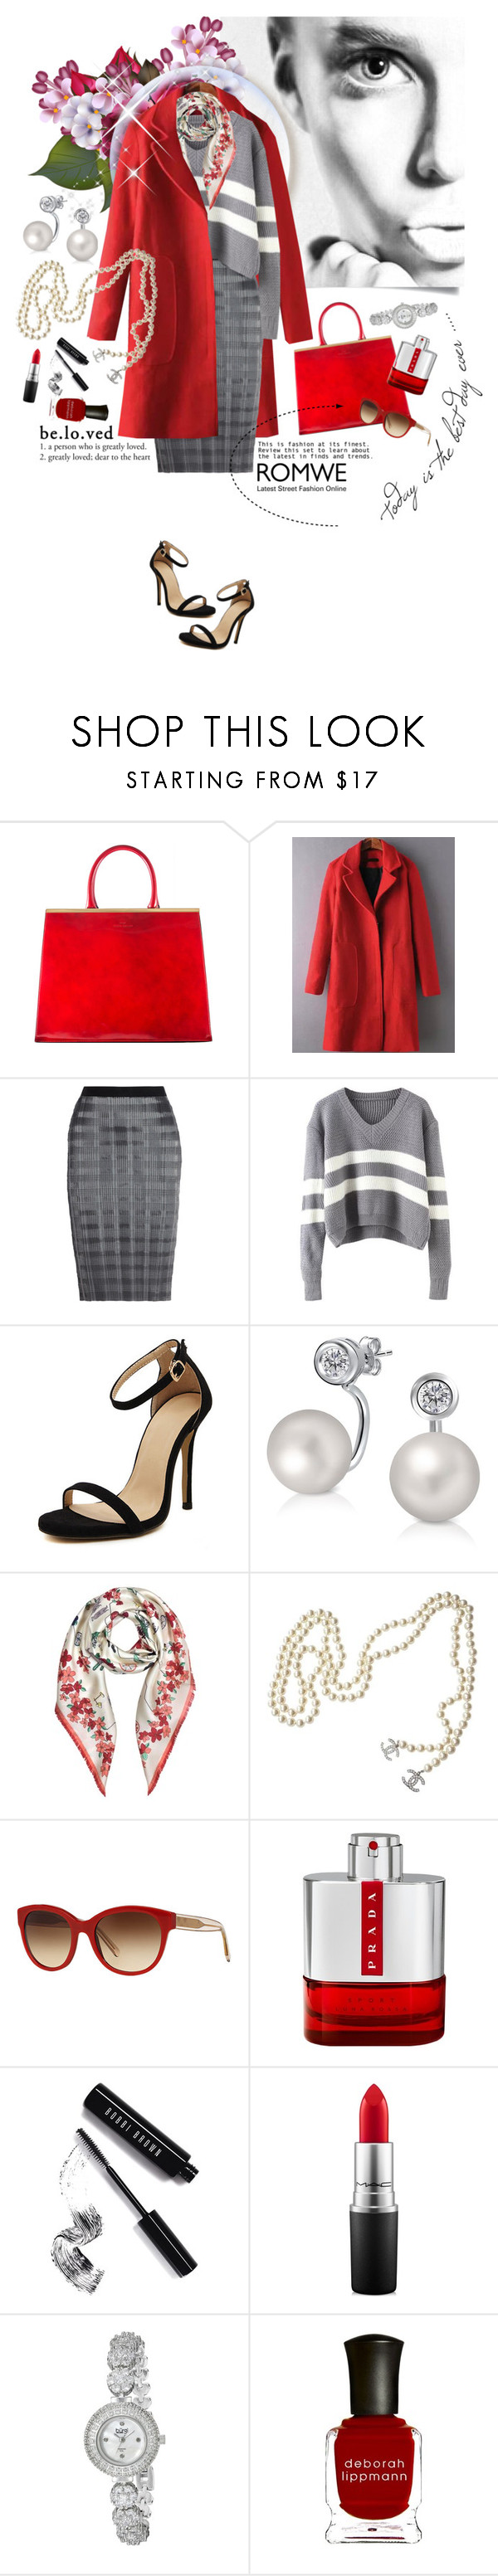 """Today is the Best Day Ever"" by gorgeautiful ❤ liked on Polyvore featuring Alexander Wang, Bling Jewelry, Tory Burch, Chanel, Burberry, Prada, Bobbi Brown Cosmetics, MAC Cosmetics, bürgi and Deborah Lippmann"